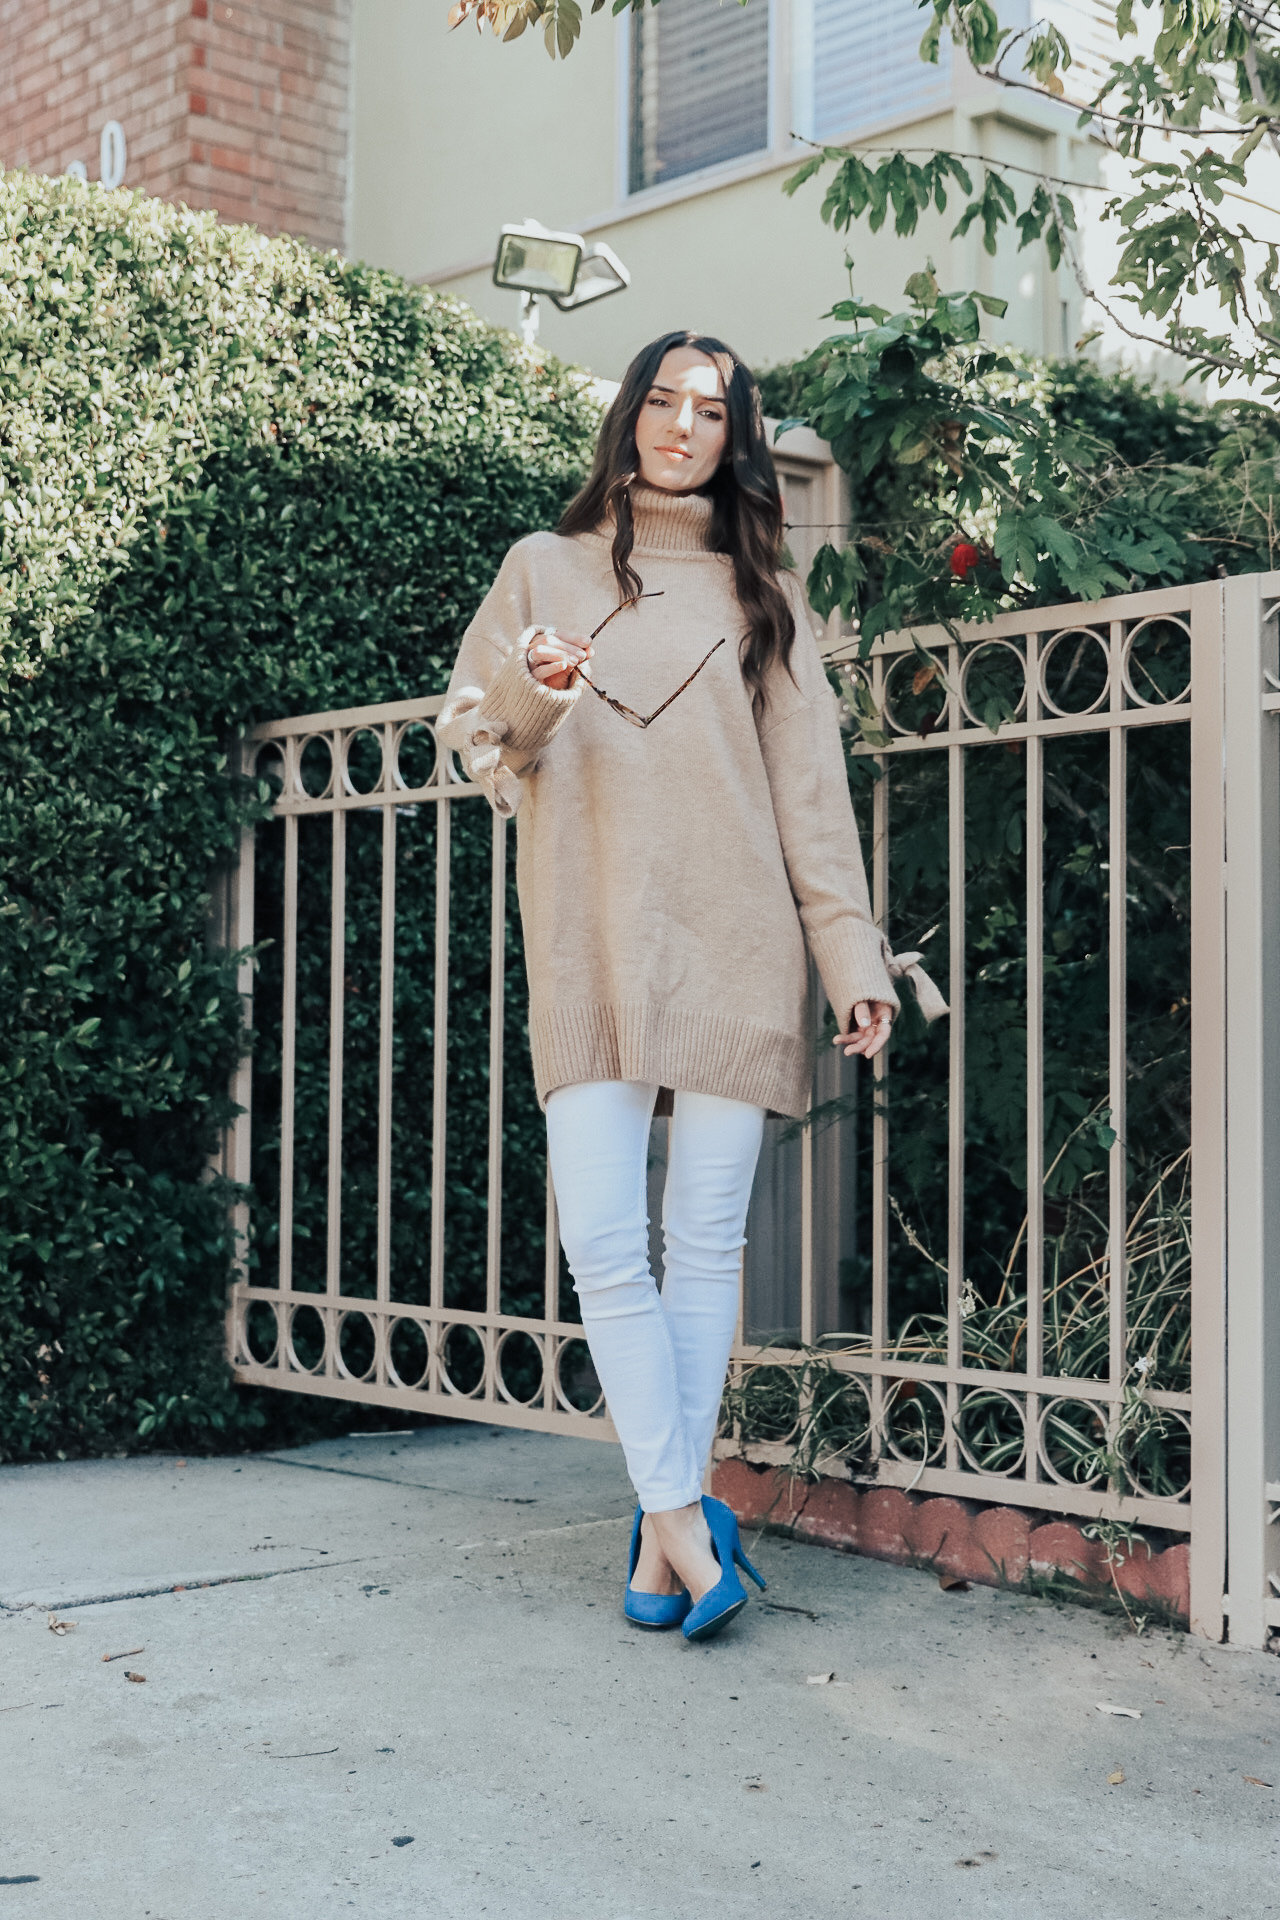 4 Sweater Weather Ideas - Zara Oversized Sweater with Bow Detail - thecasualfree.com